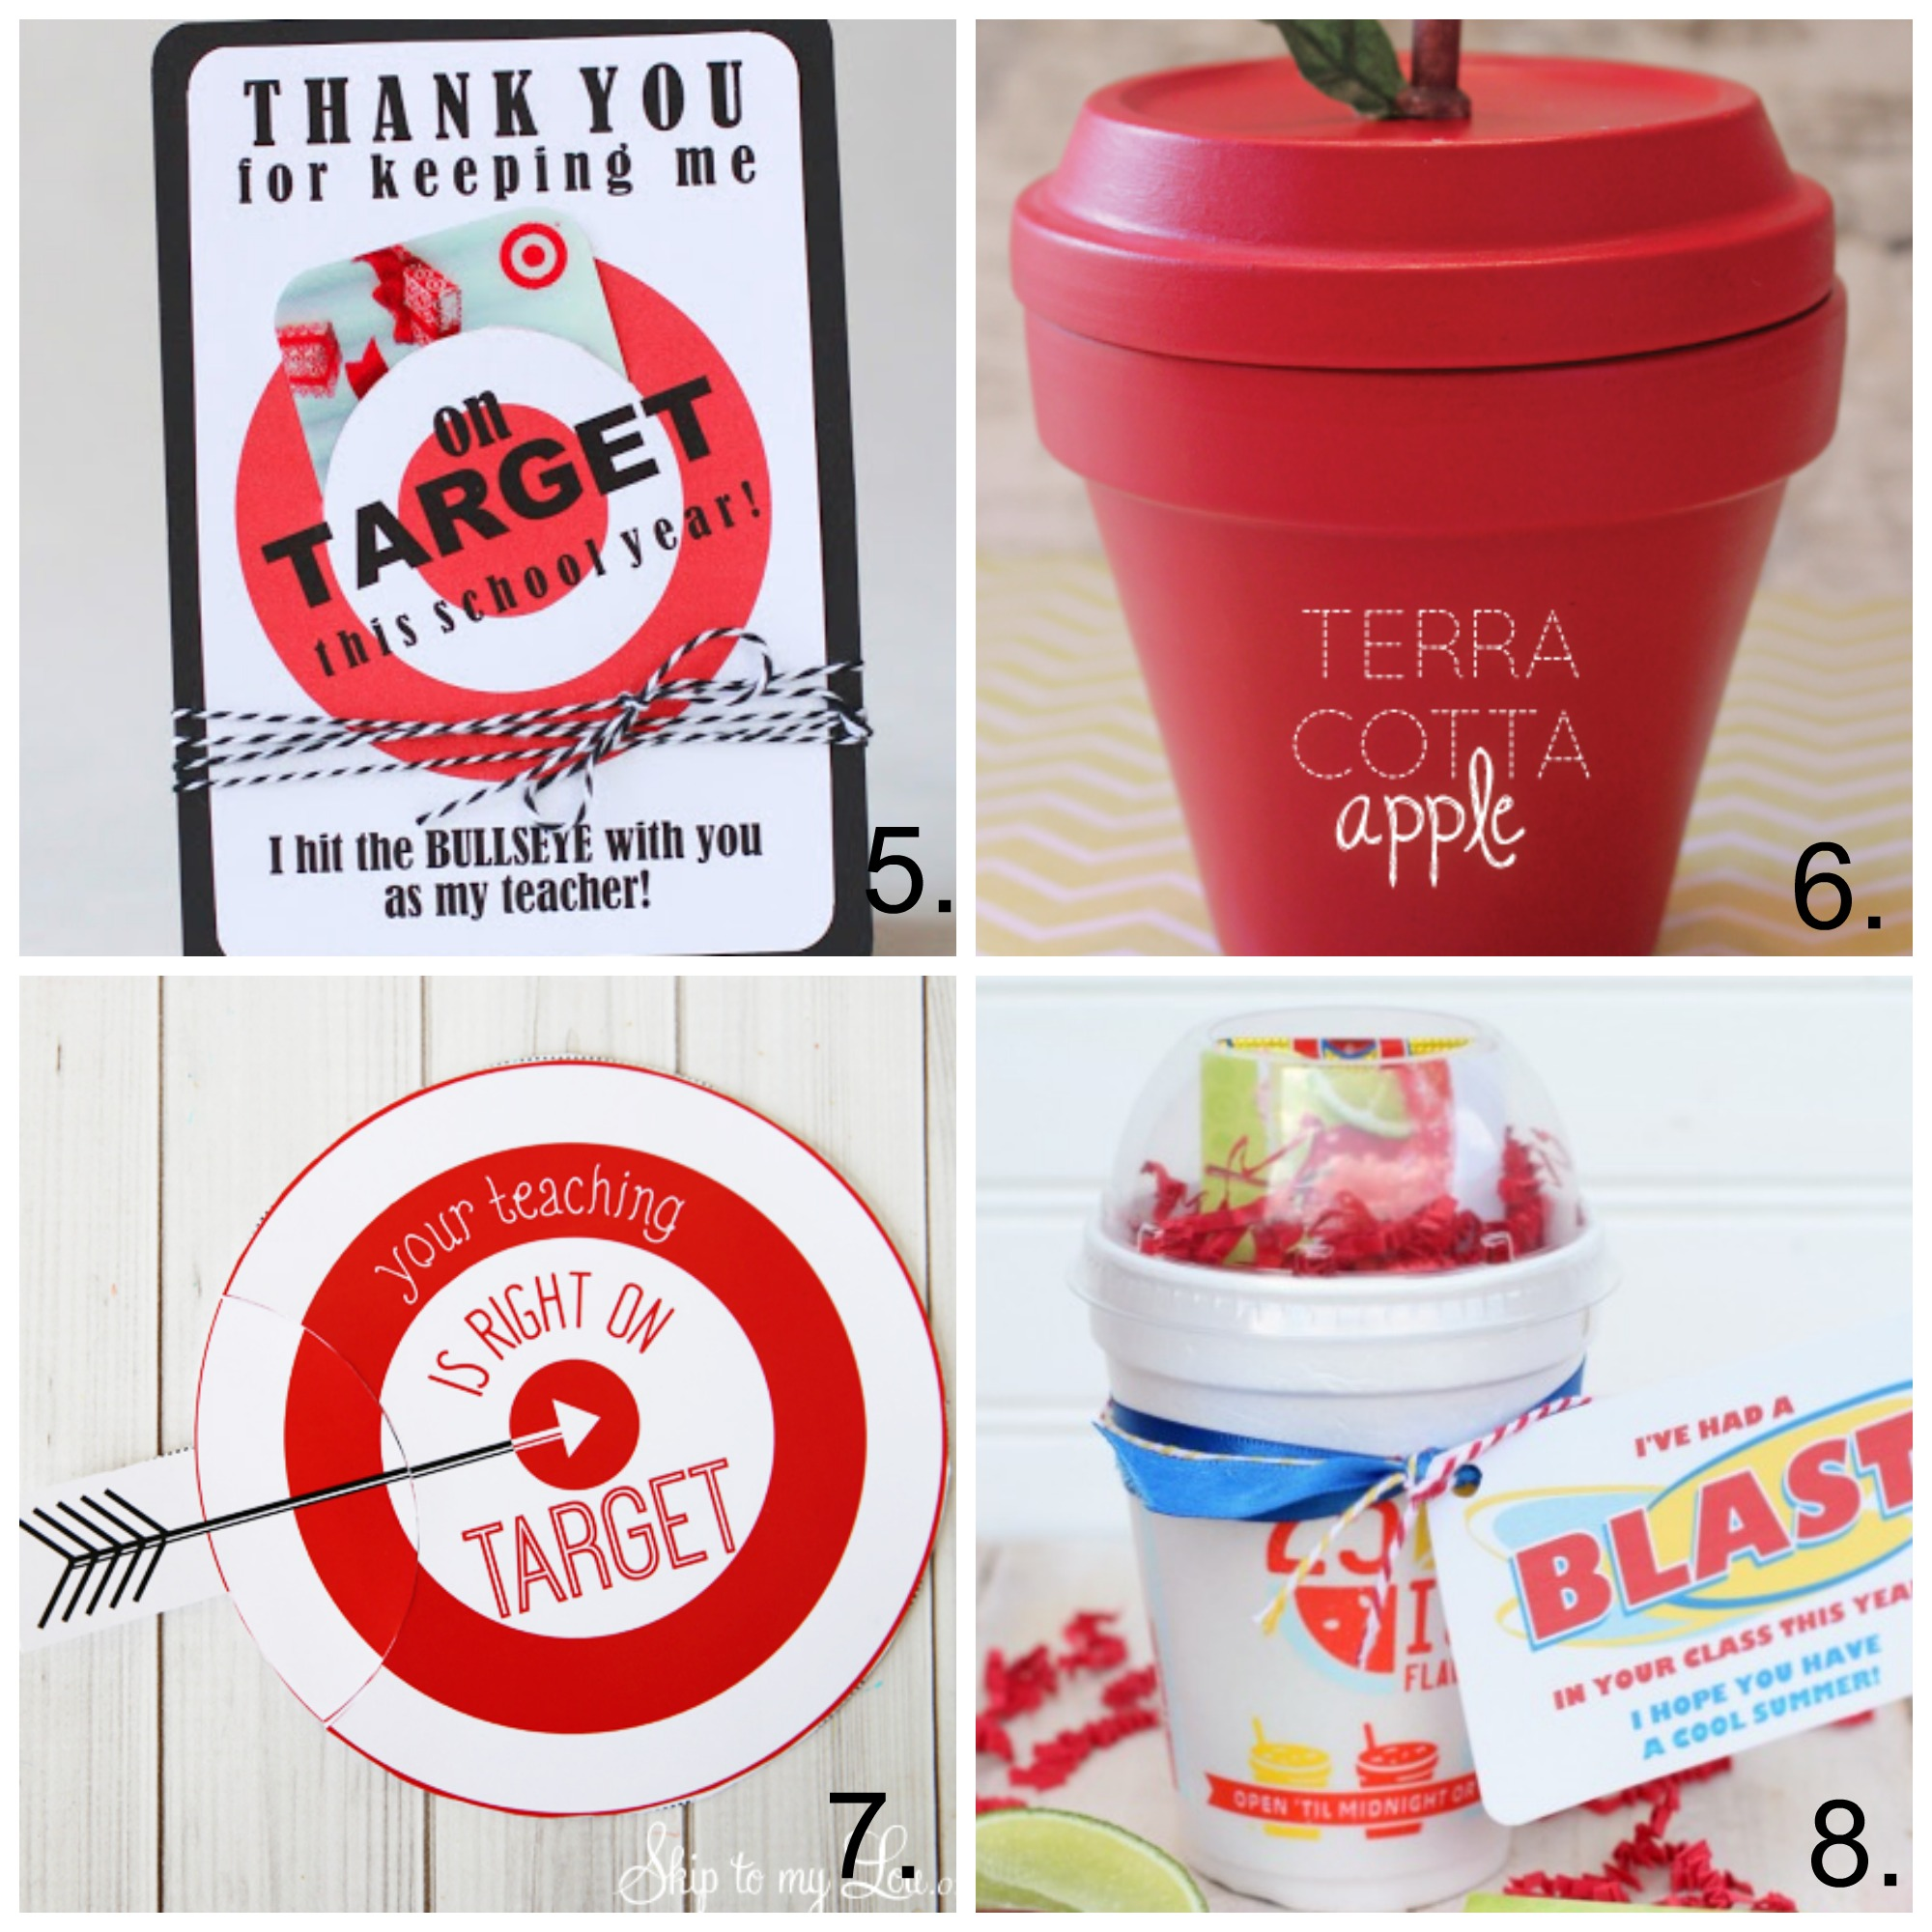 25 Awesome Teacher Appreciation Gift Ideas - My Frugal Adventures